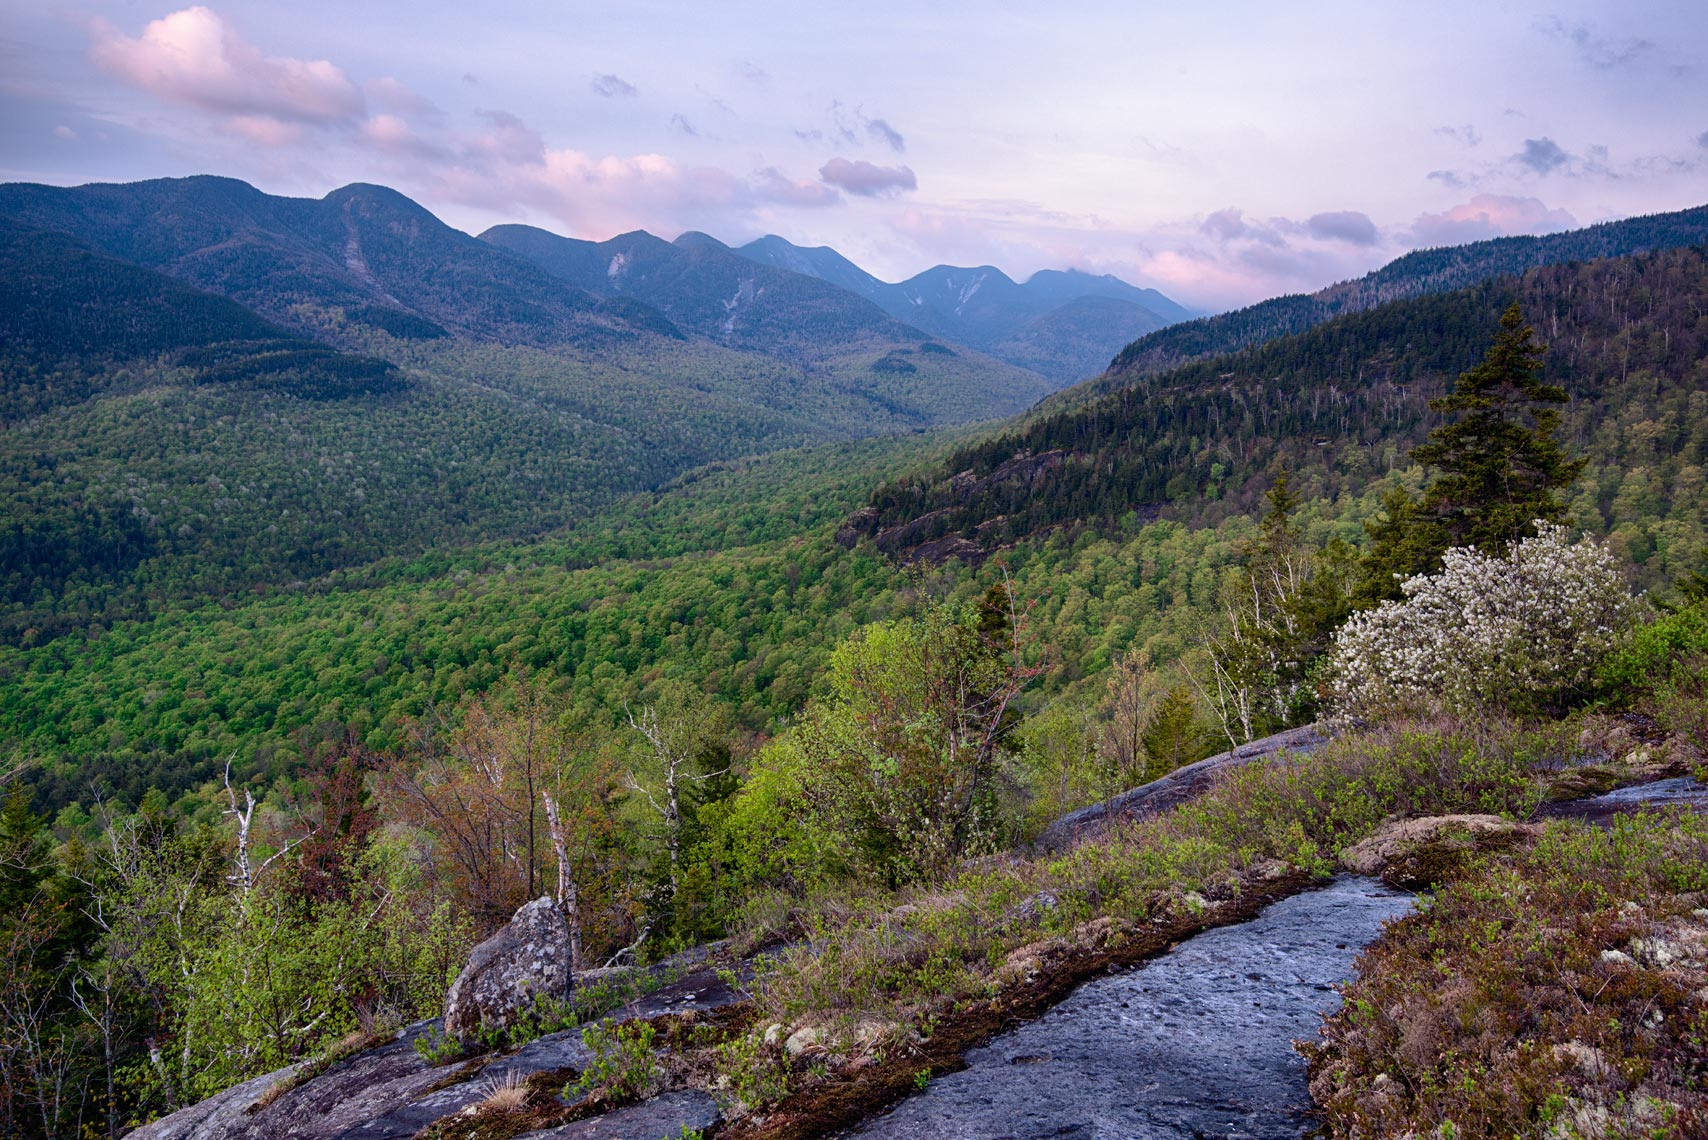 Spring Morning View of the Great Range, Adirondack Mountains, New York State